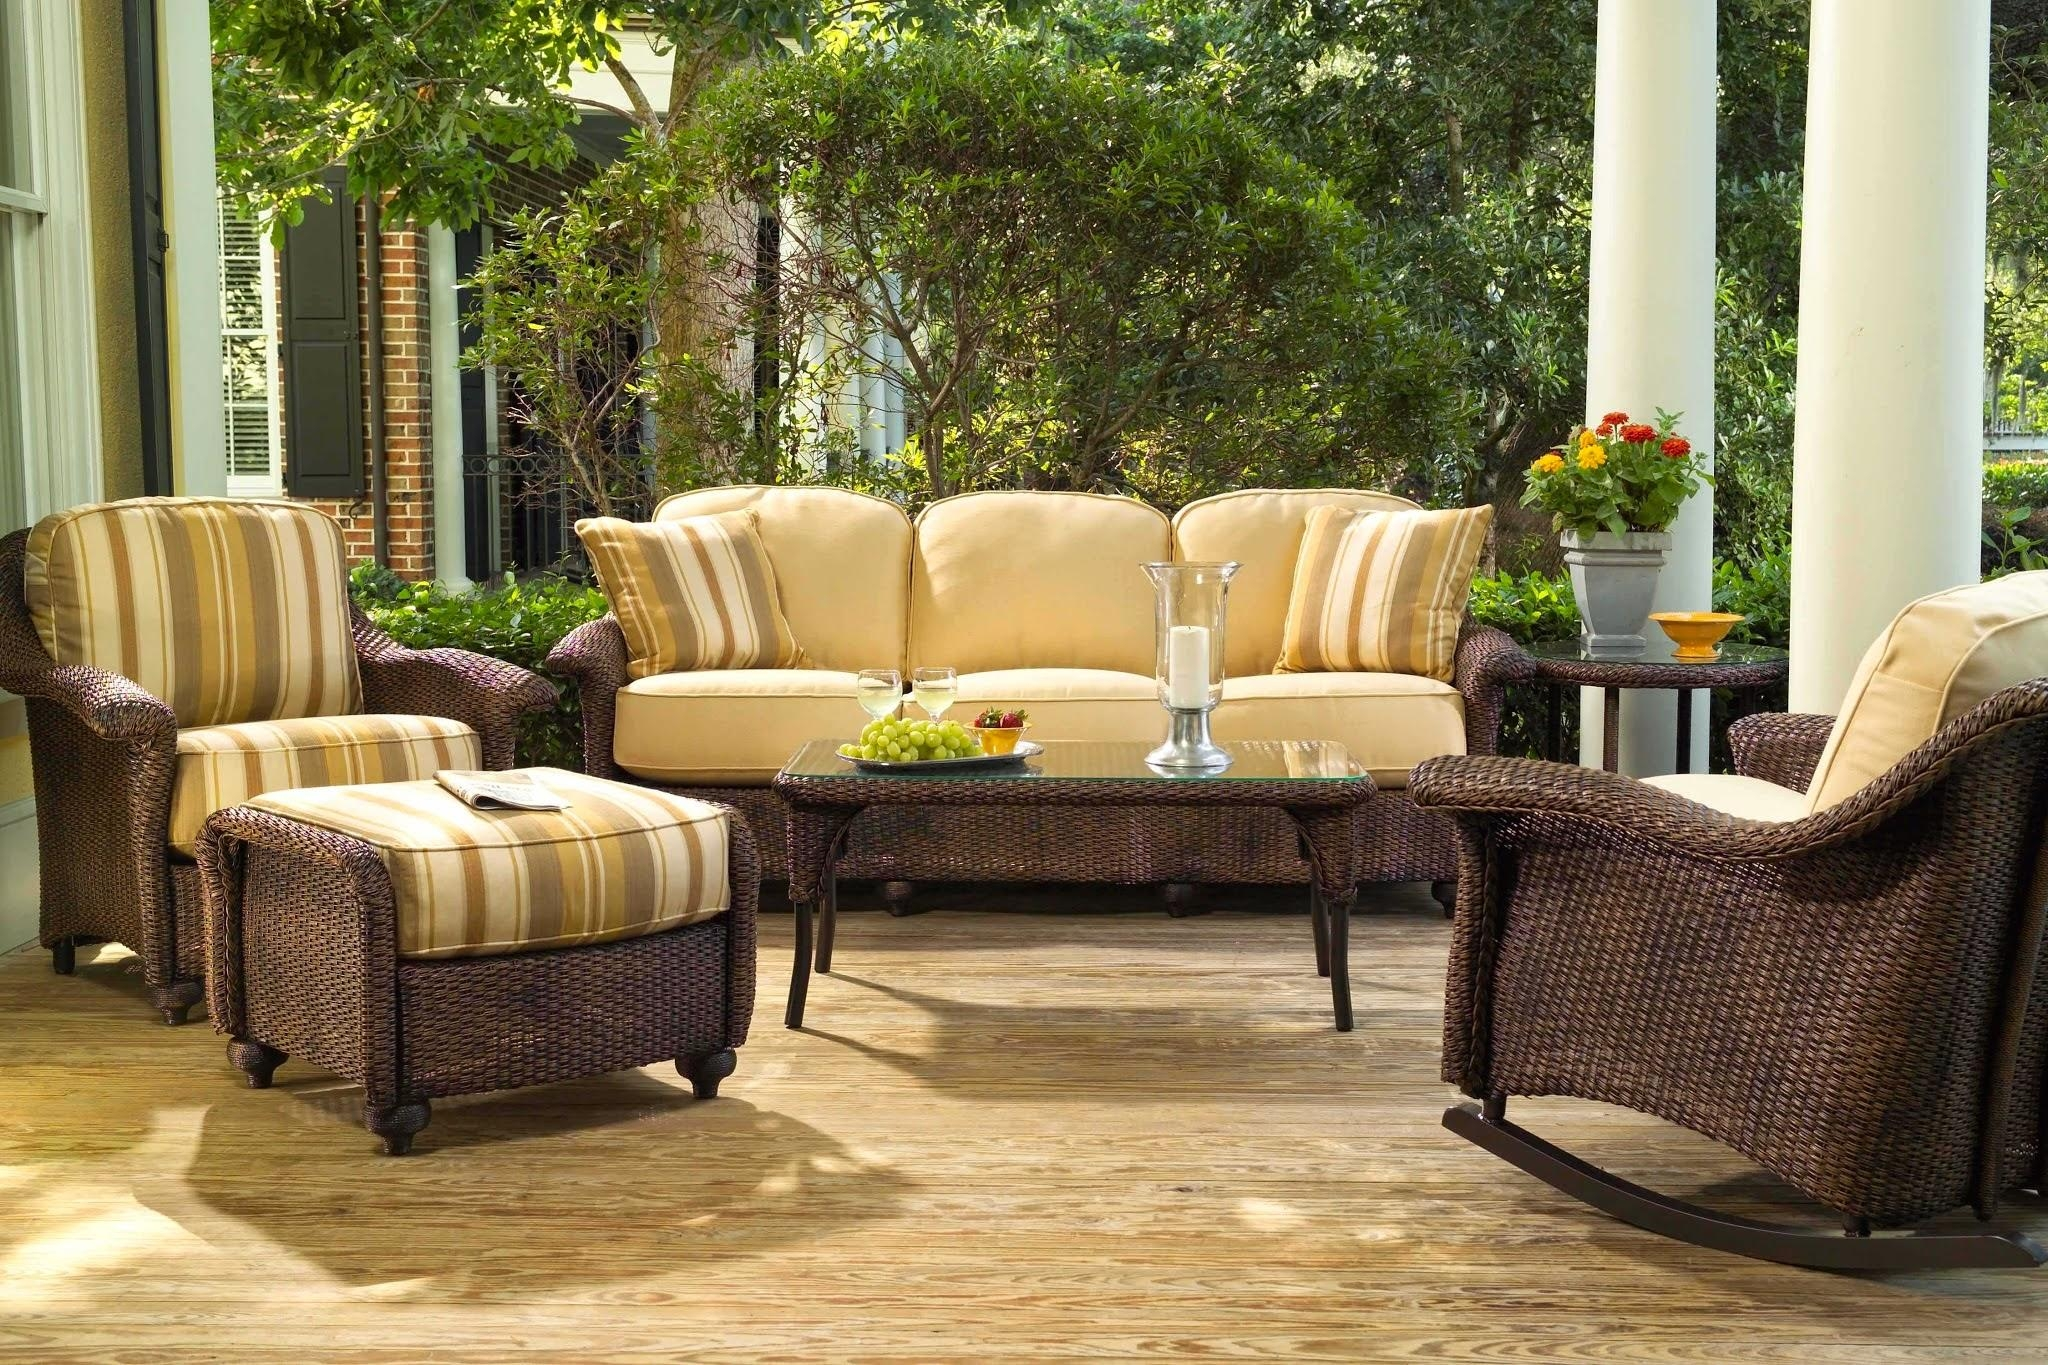 Cast Aluminum Patio Furniture Sets 6 Pc Outdoor Wicker Furniture For Black Wicker Sofas (View 20 of 20)